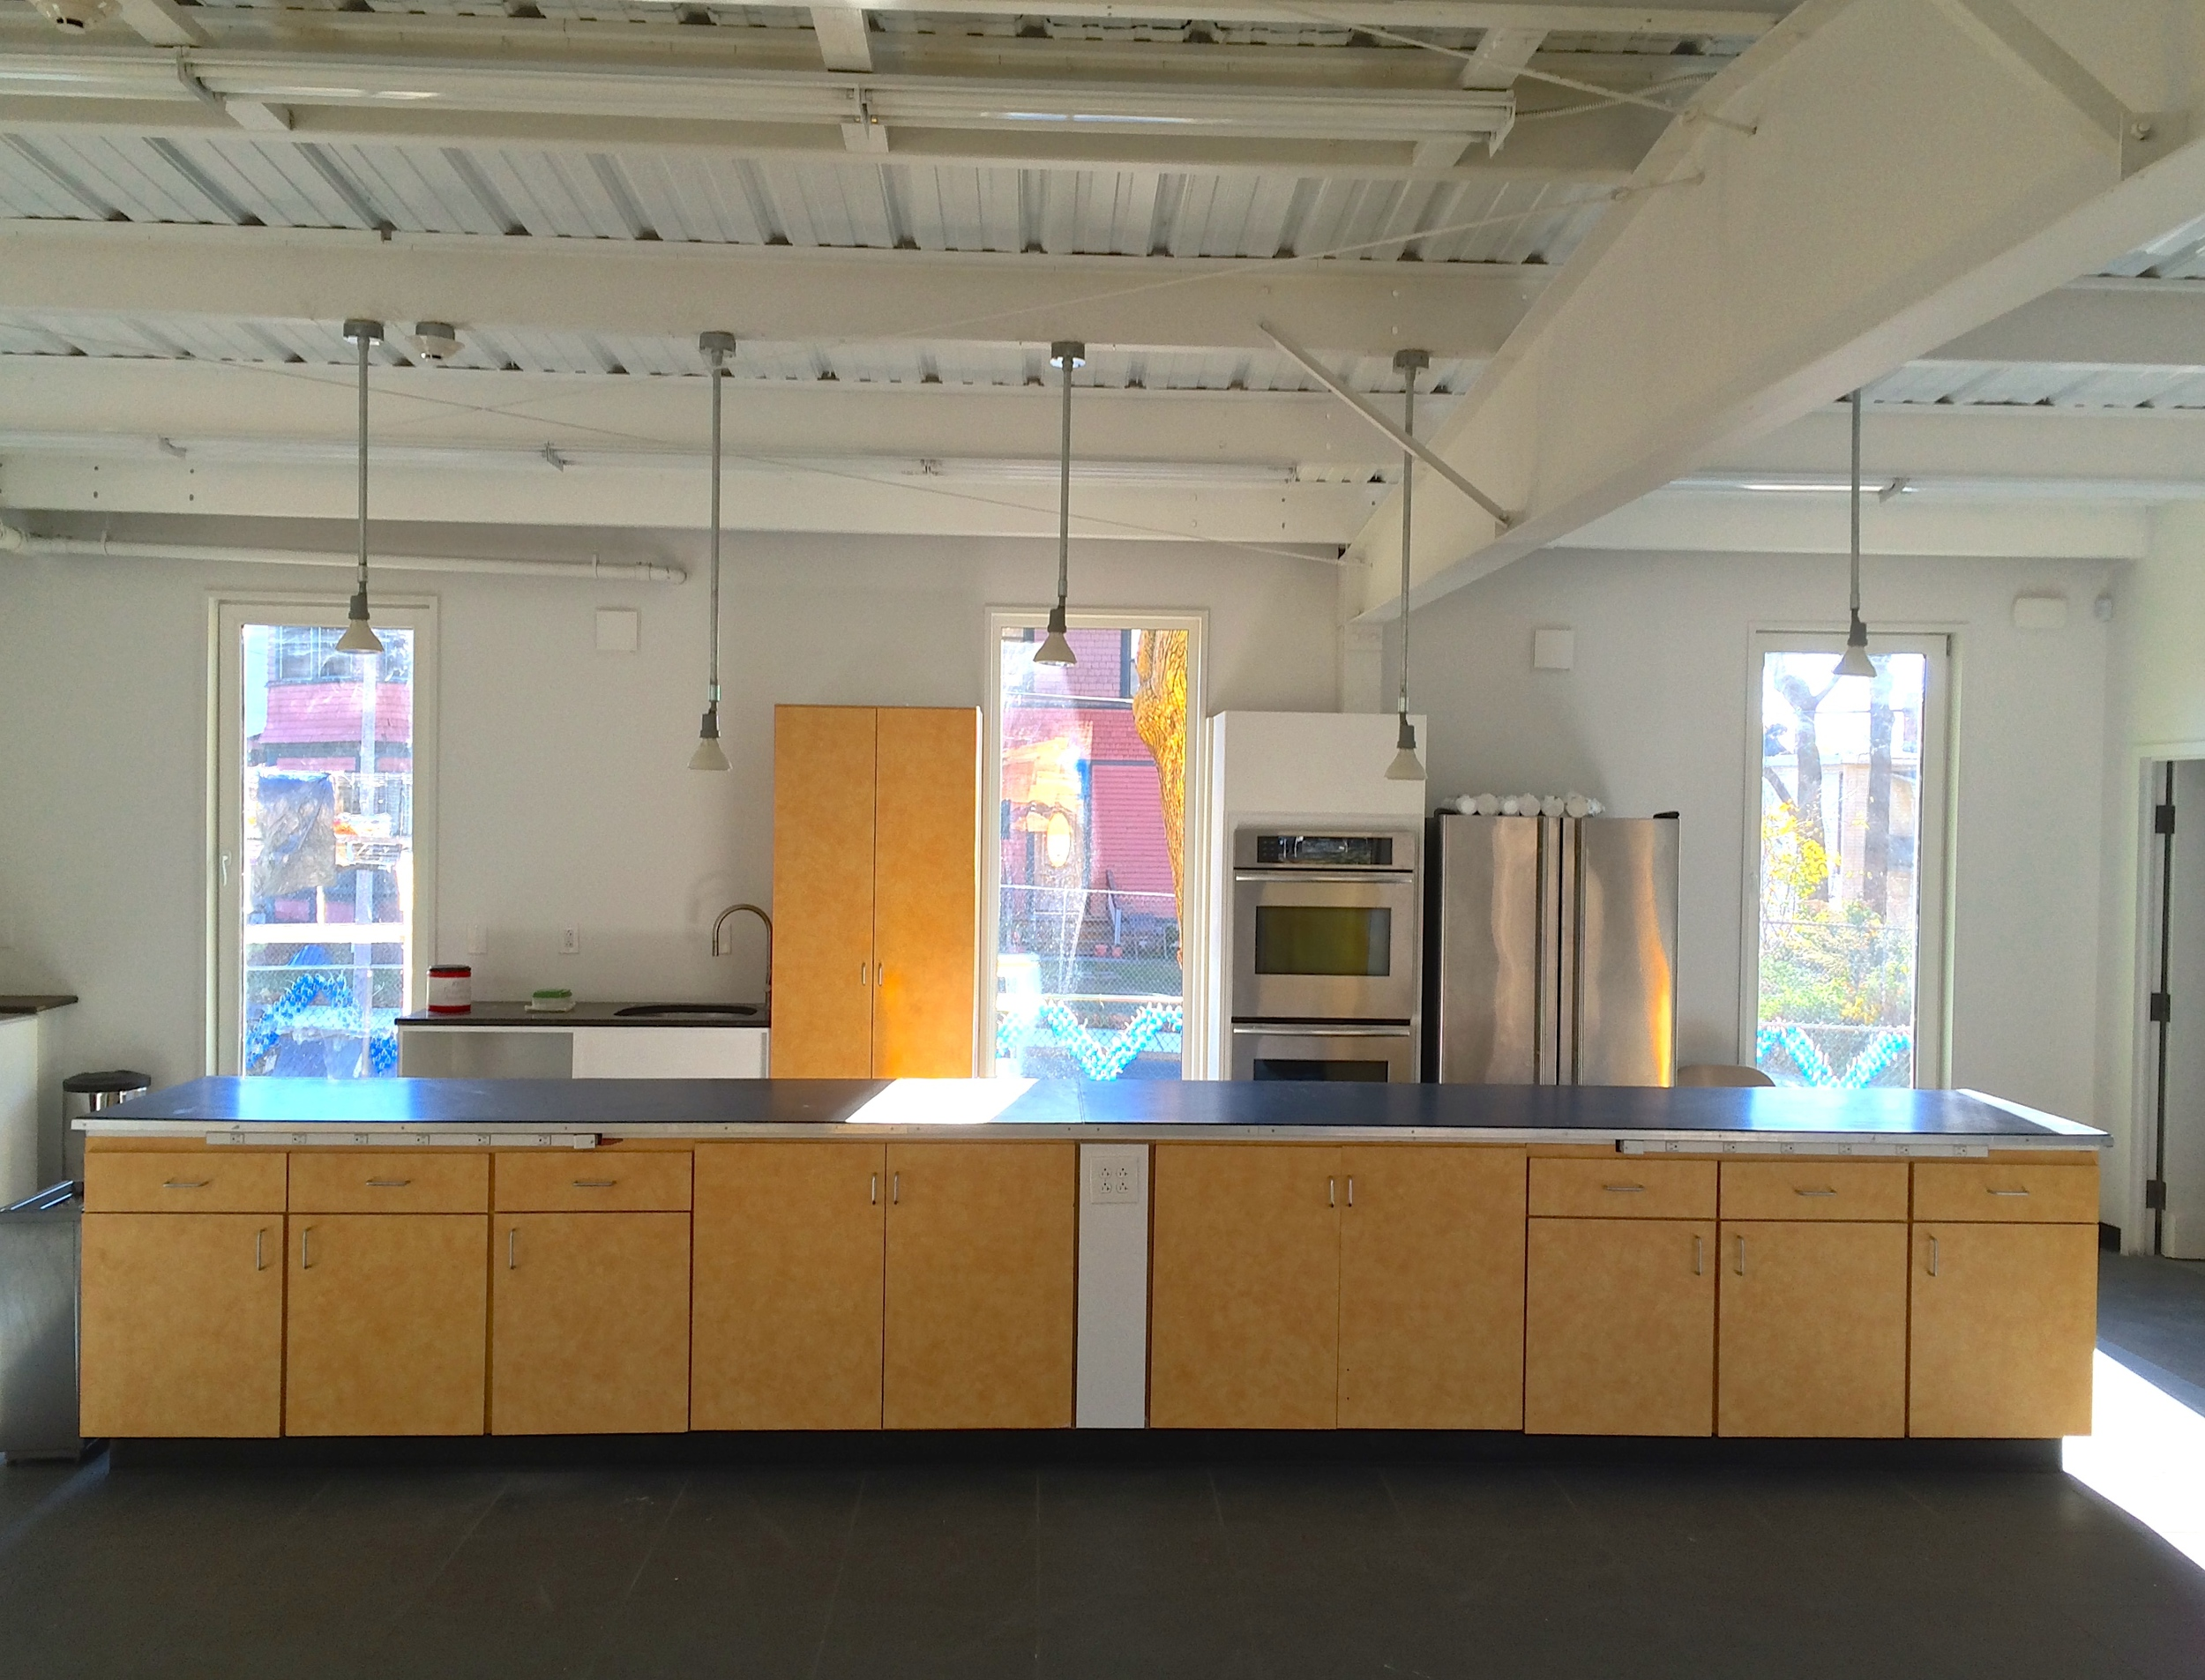 interior kitchen - donations through Dunkin Donuts and the Boston Building Resource Center